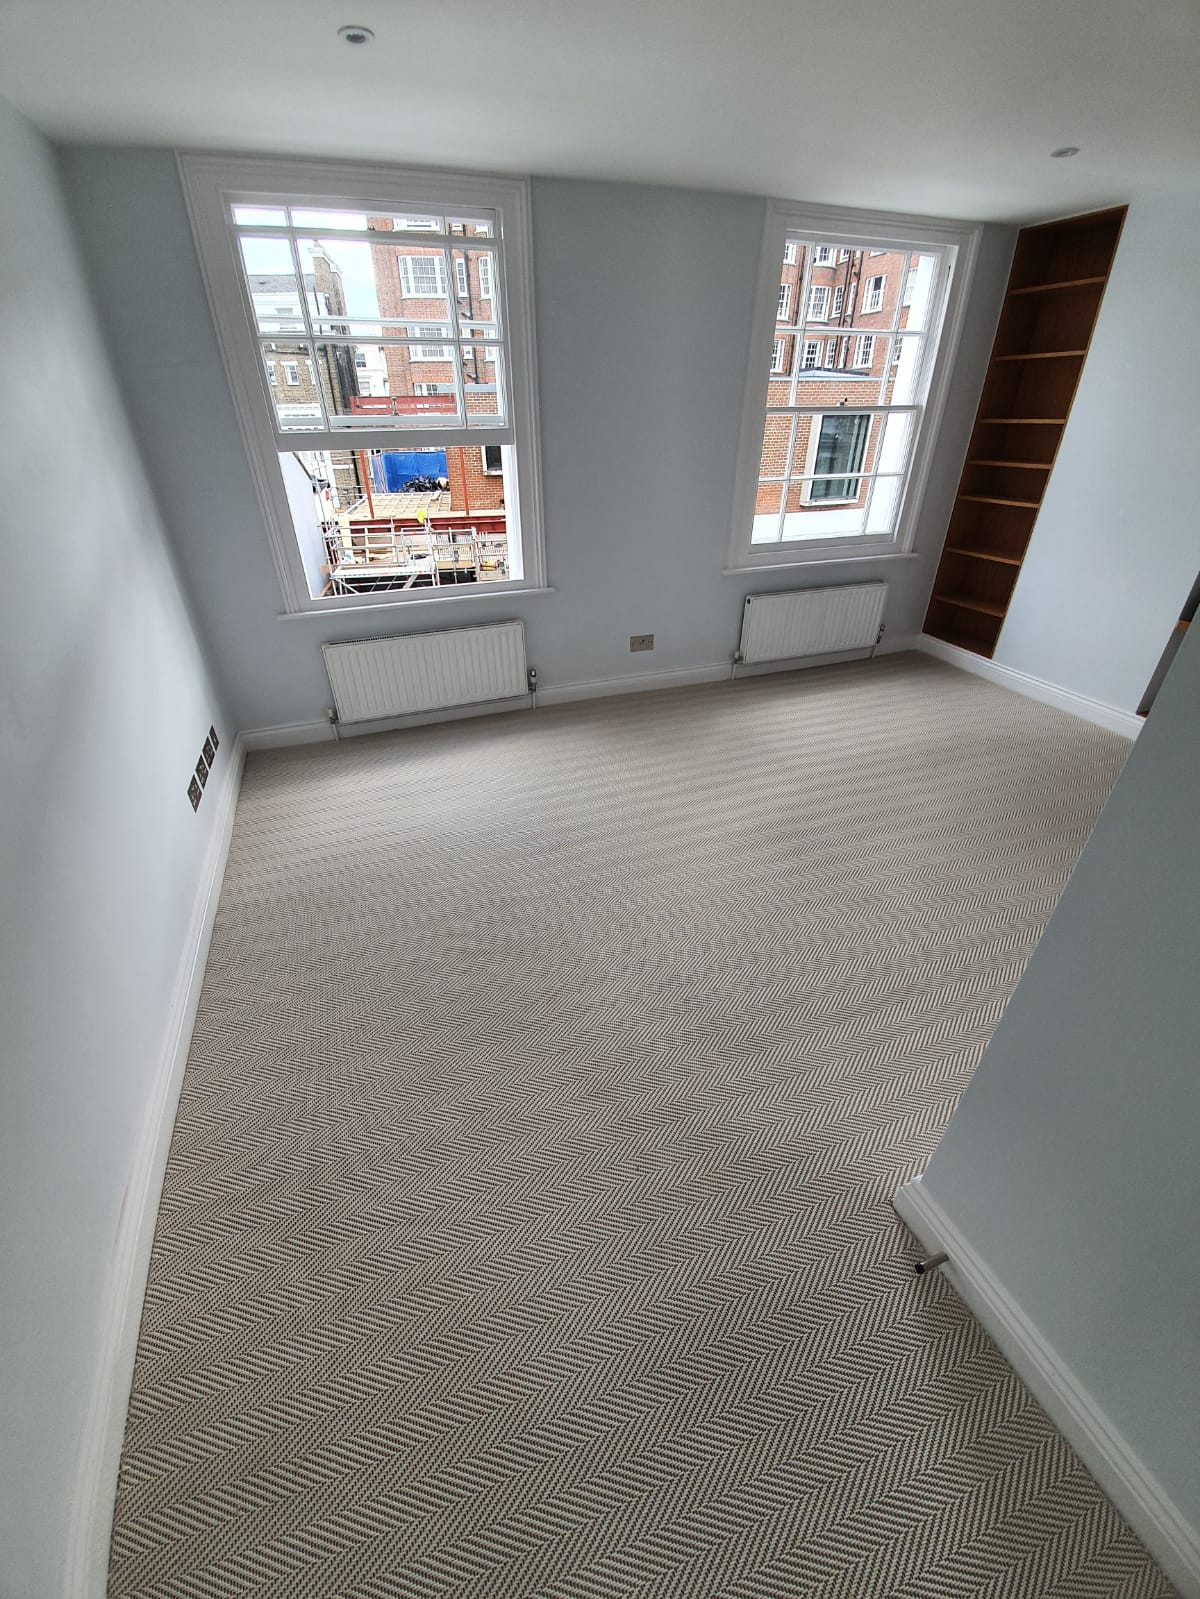 Unnatural Flooring New England Sugar Hill Carpet in Ealing 2